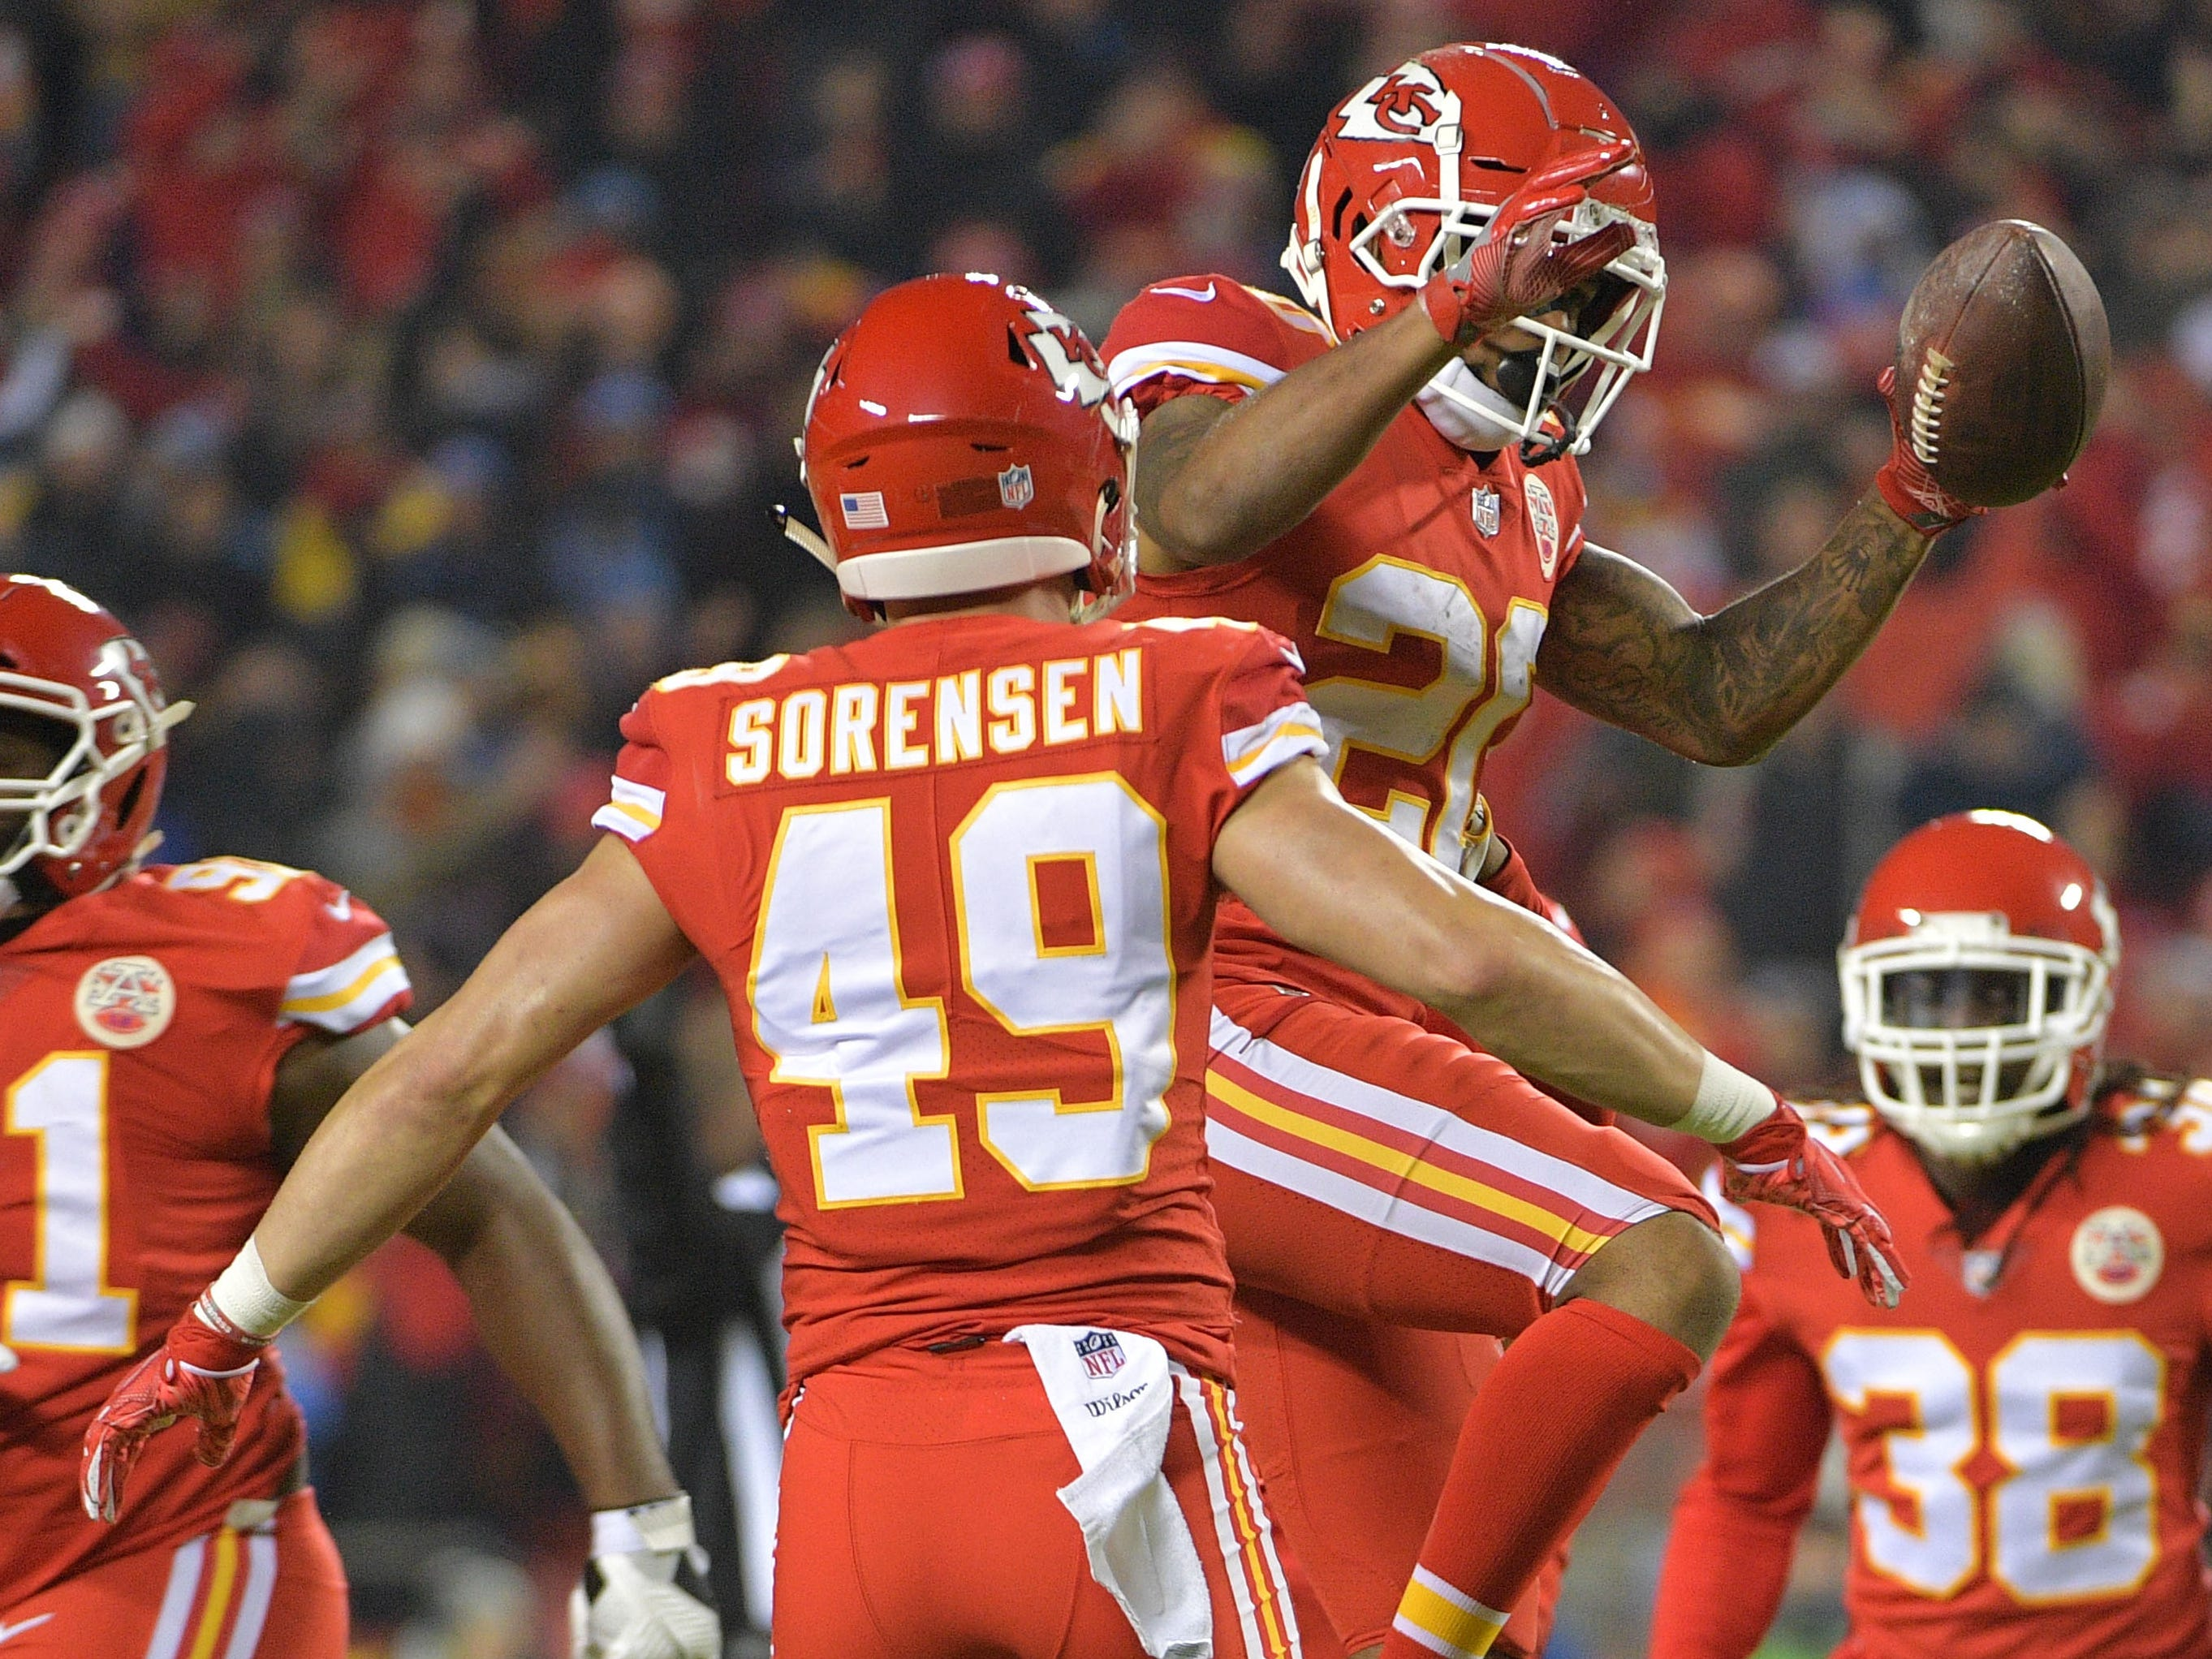 Kansas City Chiefs cornerback Steven Nelson celebrates after intercepting a pass against the Los Angeles Chargers during the first half at Arrowhead Stadium.